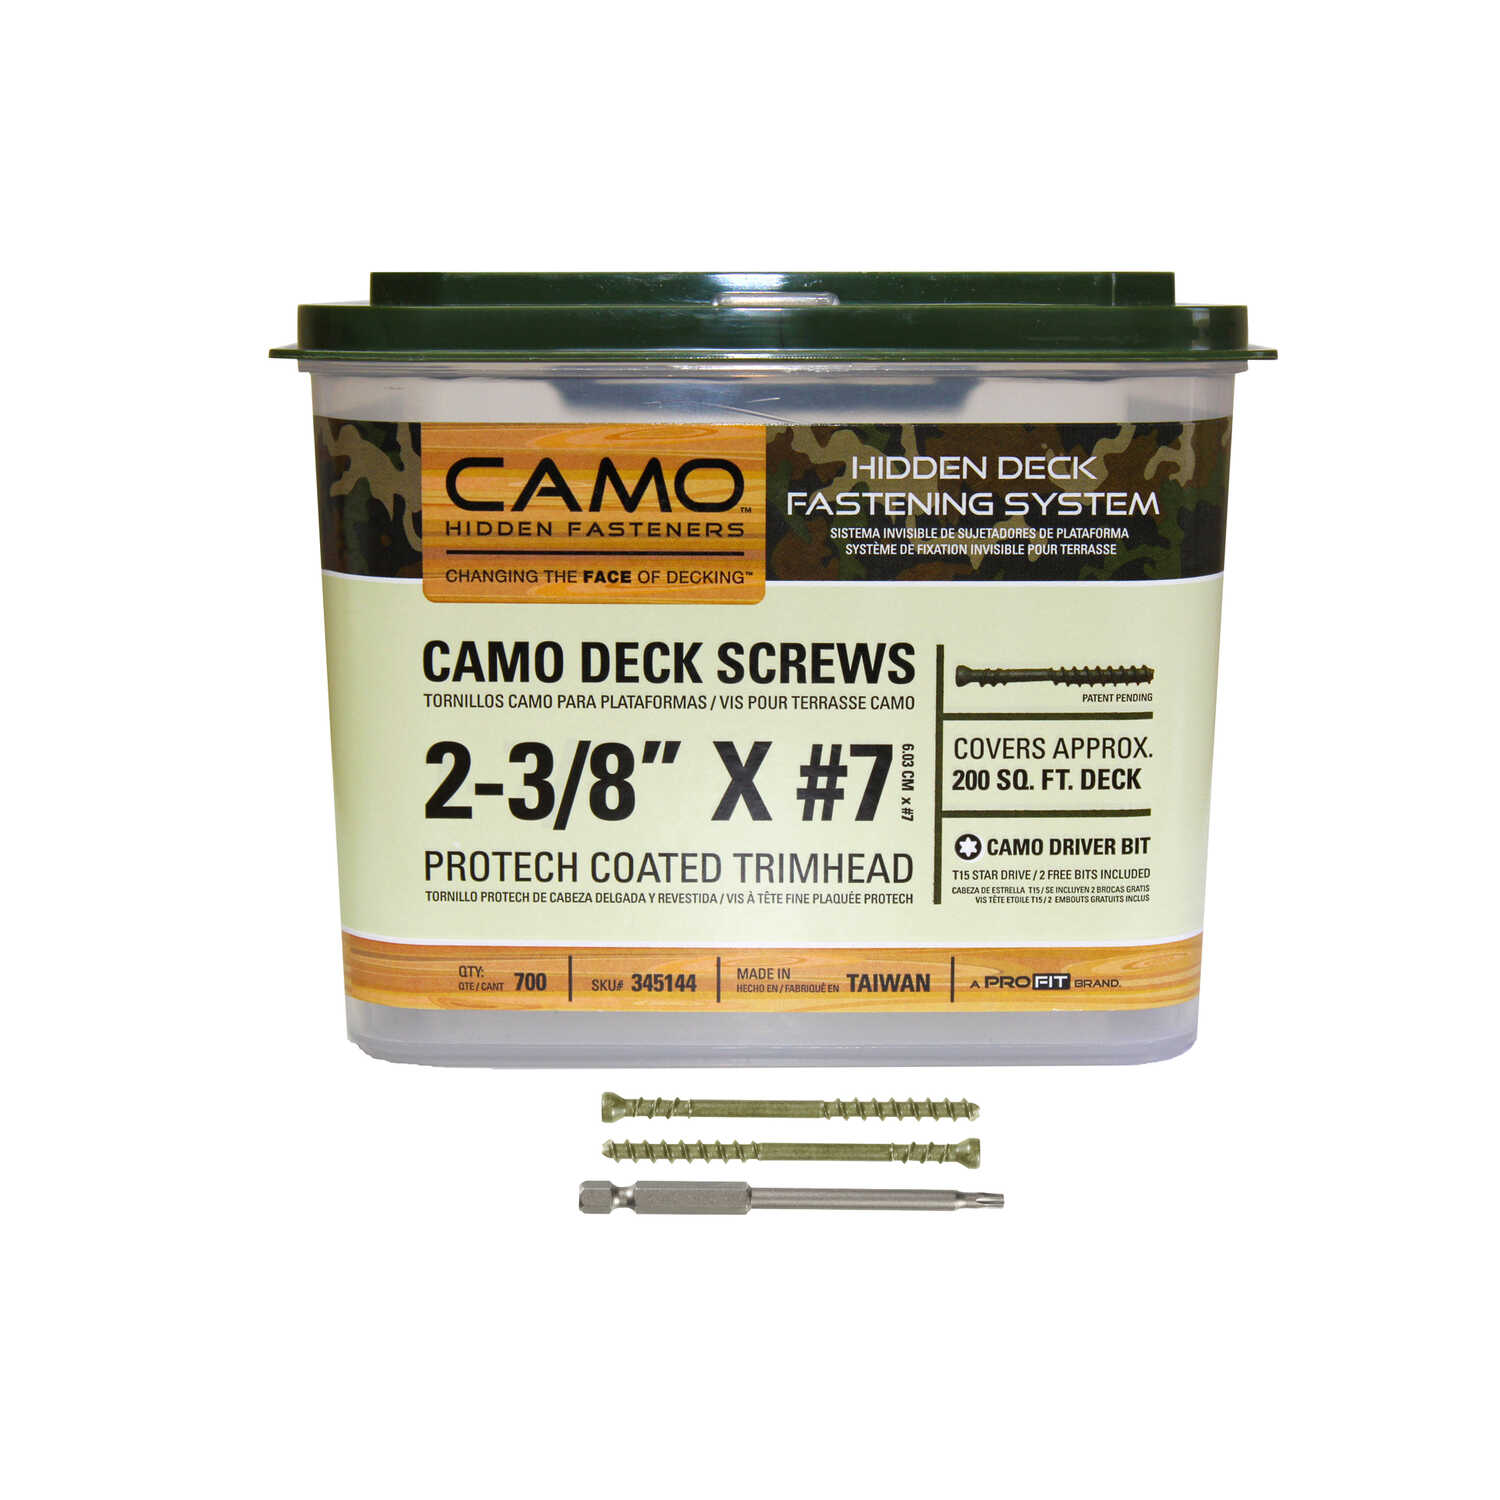 CAMO  No. 7   x 2-3/8 in. L Star  Trim Head Protech Coated  Carbon Steel  Deck Screws  700 EA